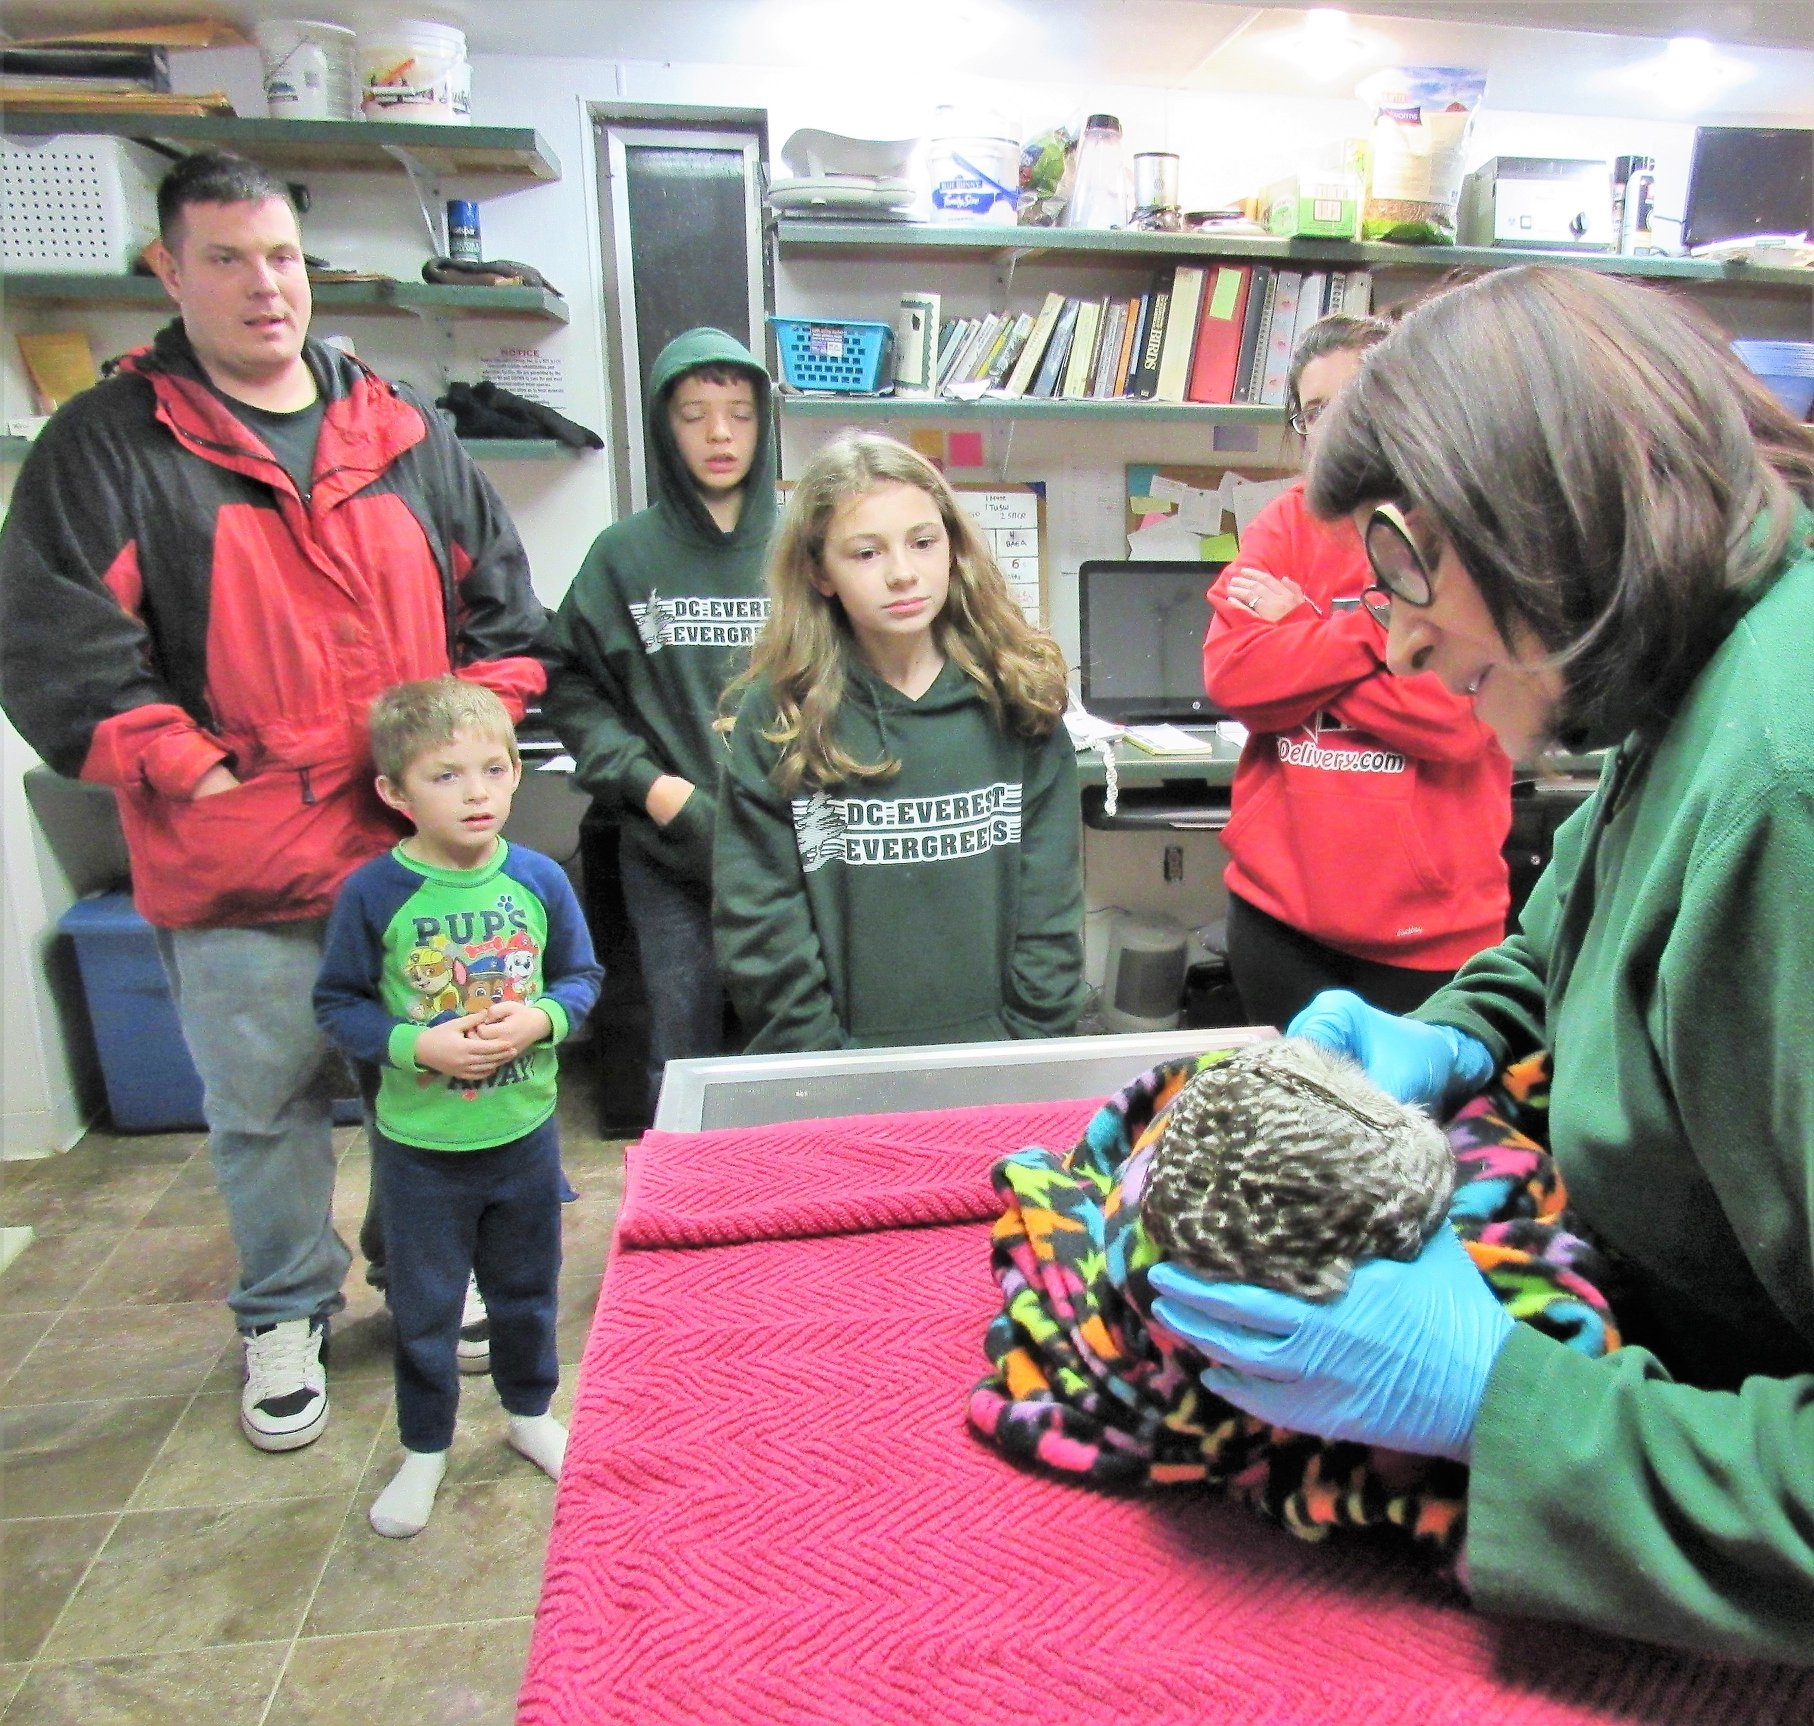 A huge part of our work at REGI is education. We love that our programs have touched this family. Here they observe the admission exam of the owl the rescued.